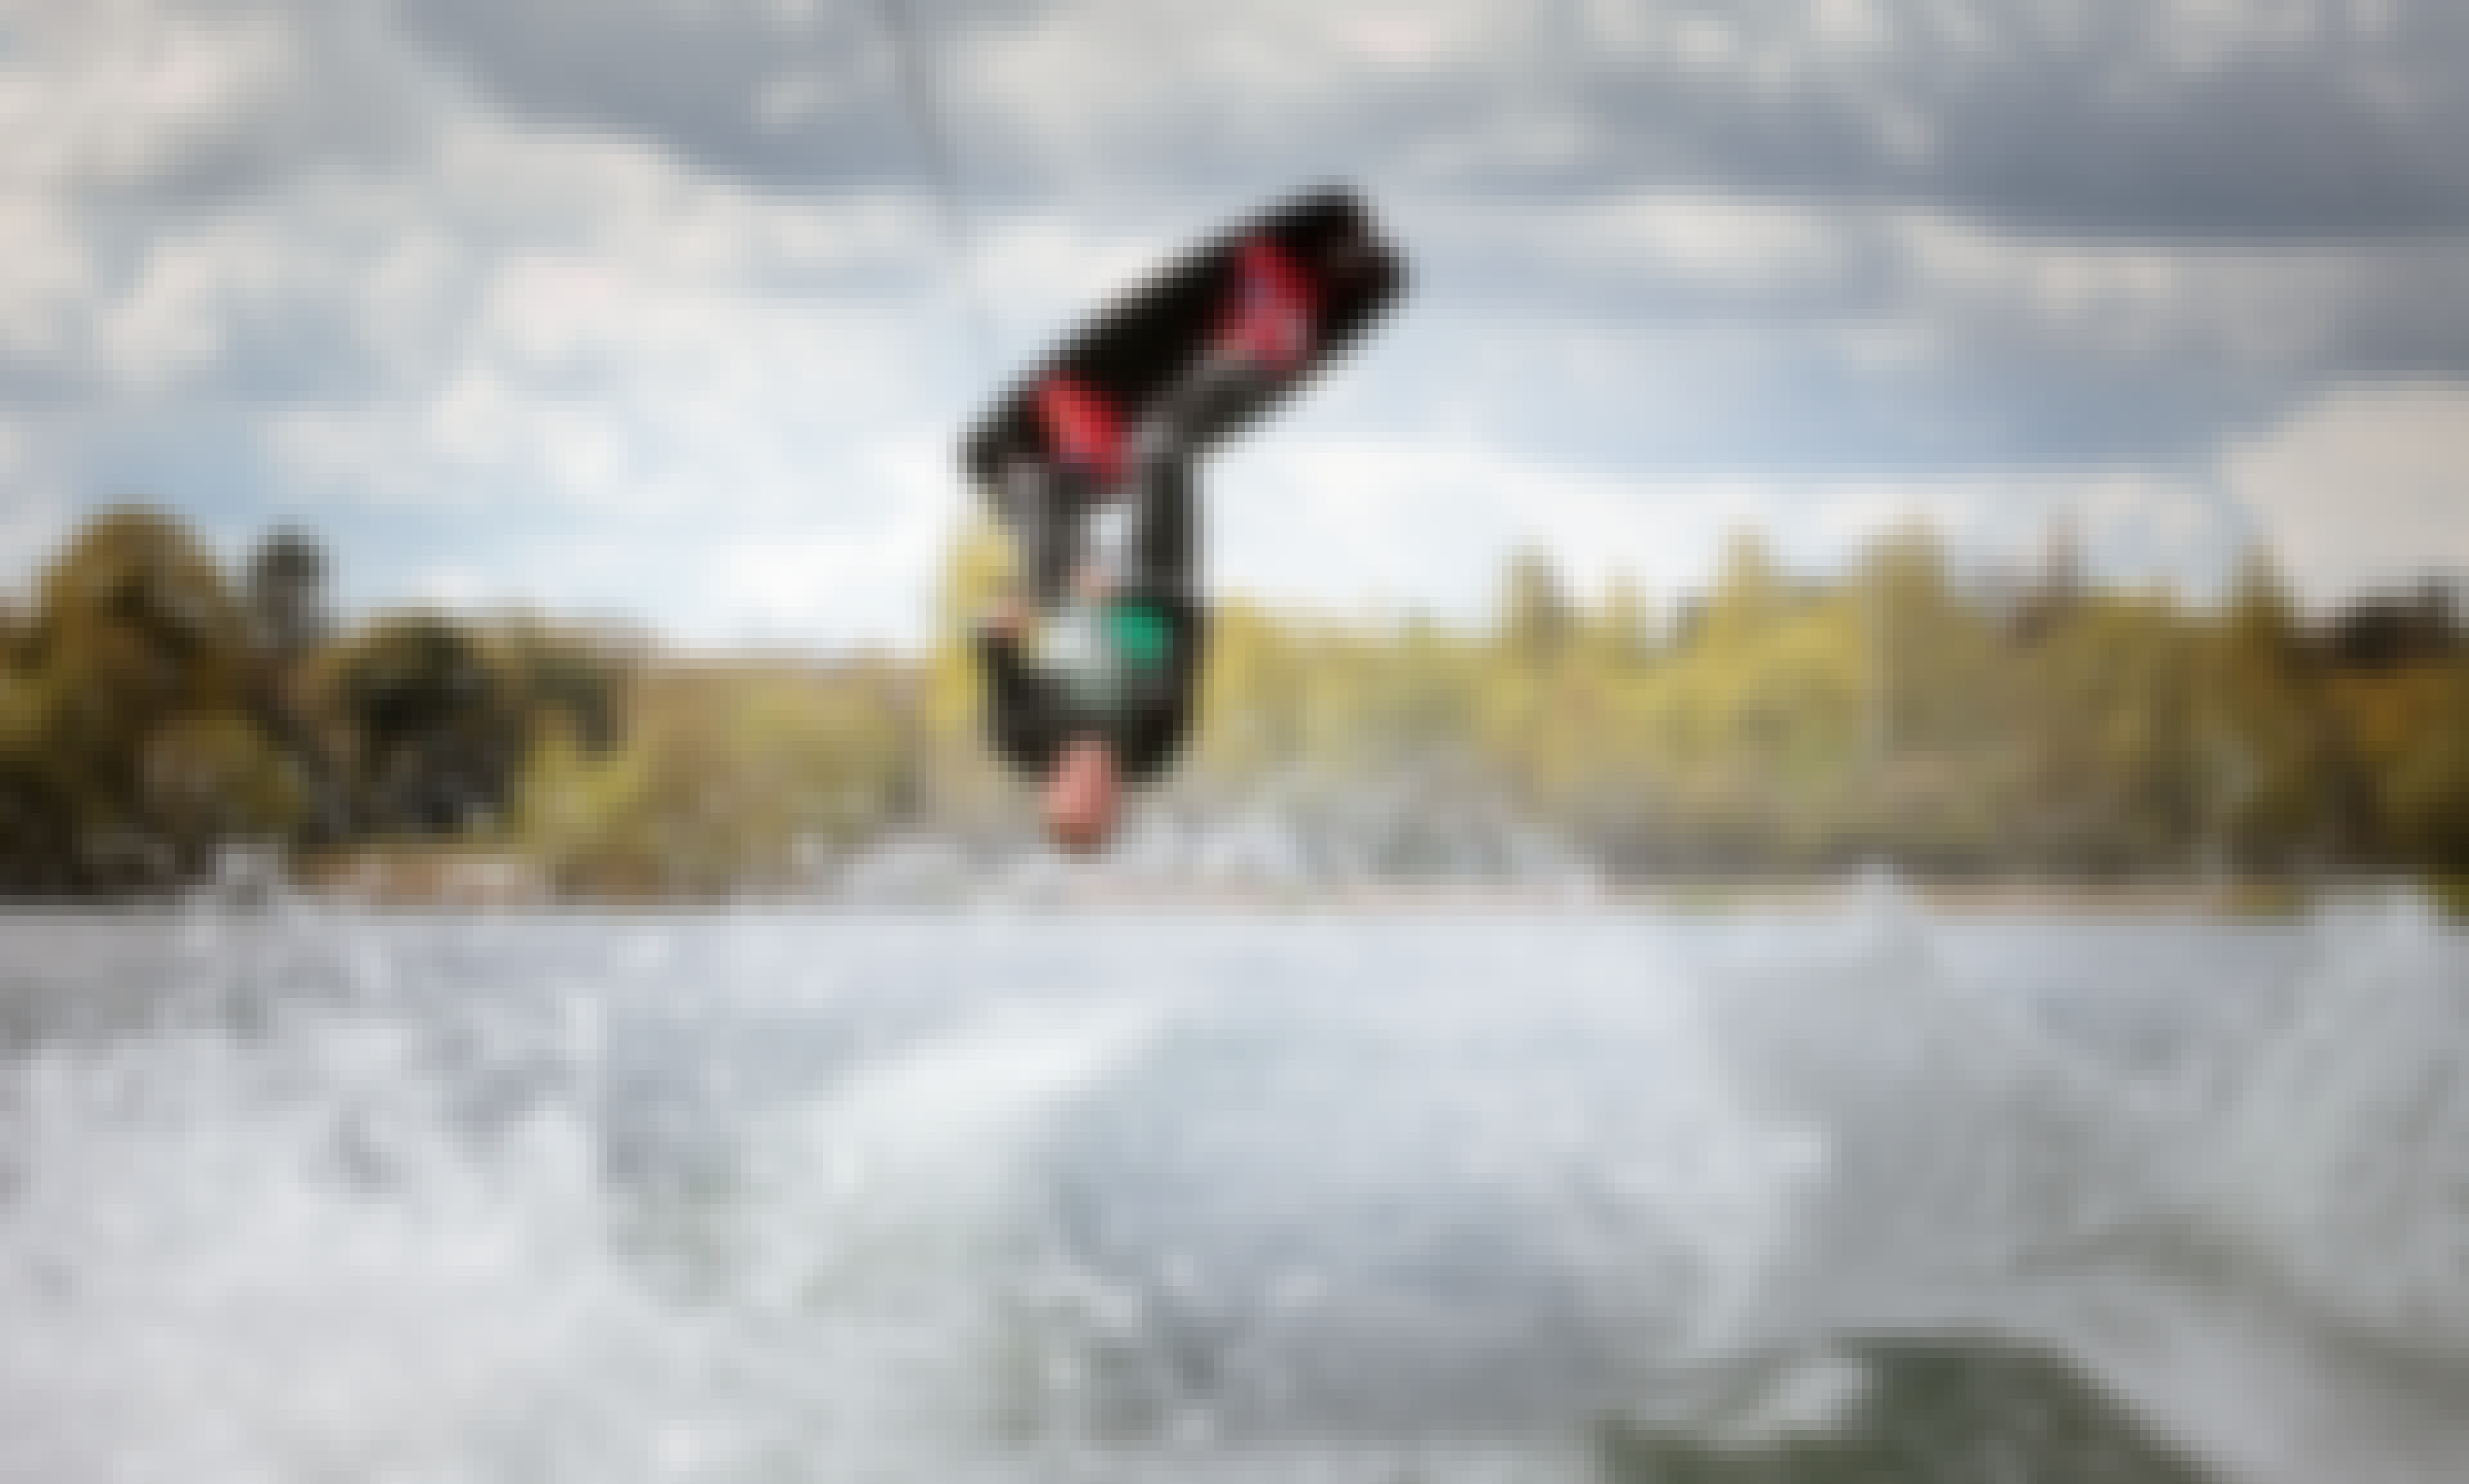 15-minute Wakeboarding Ride in Mytchett, England